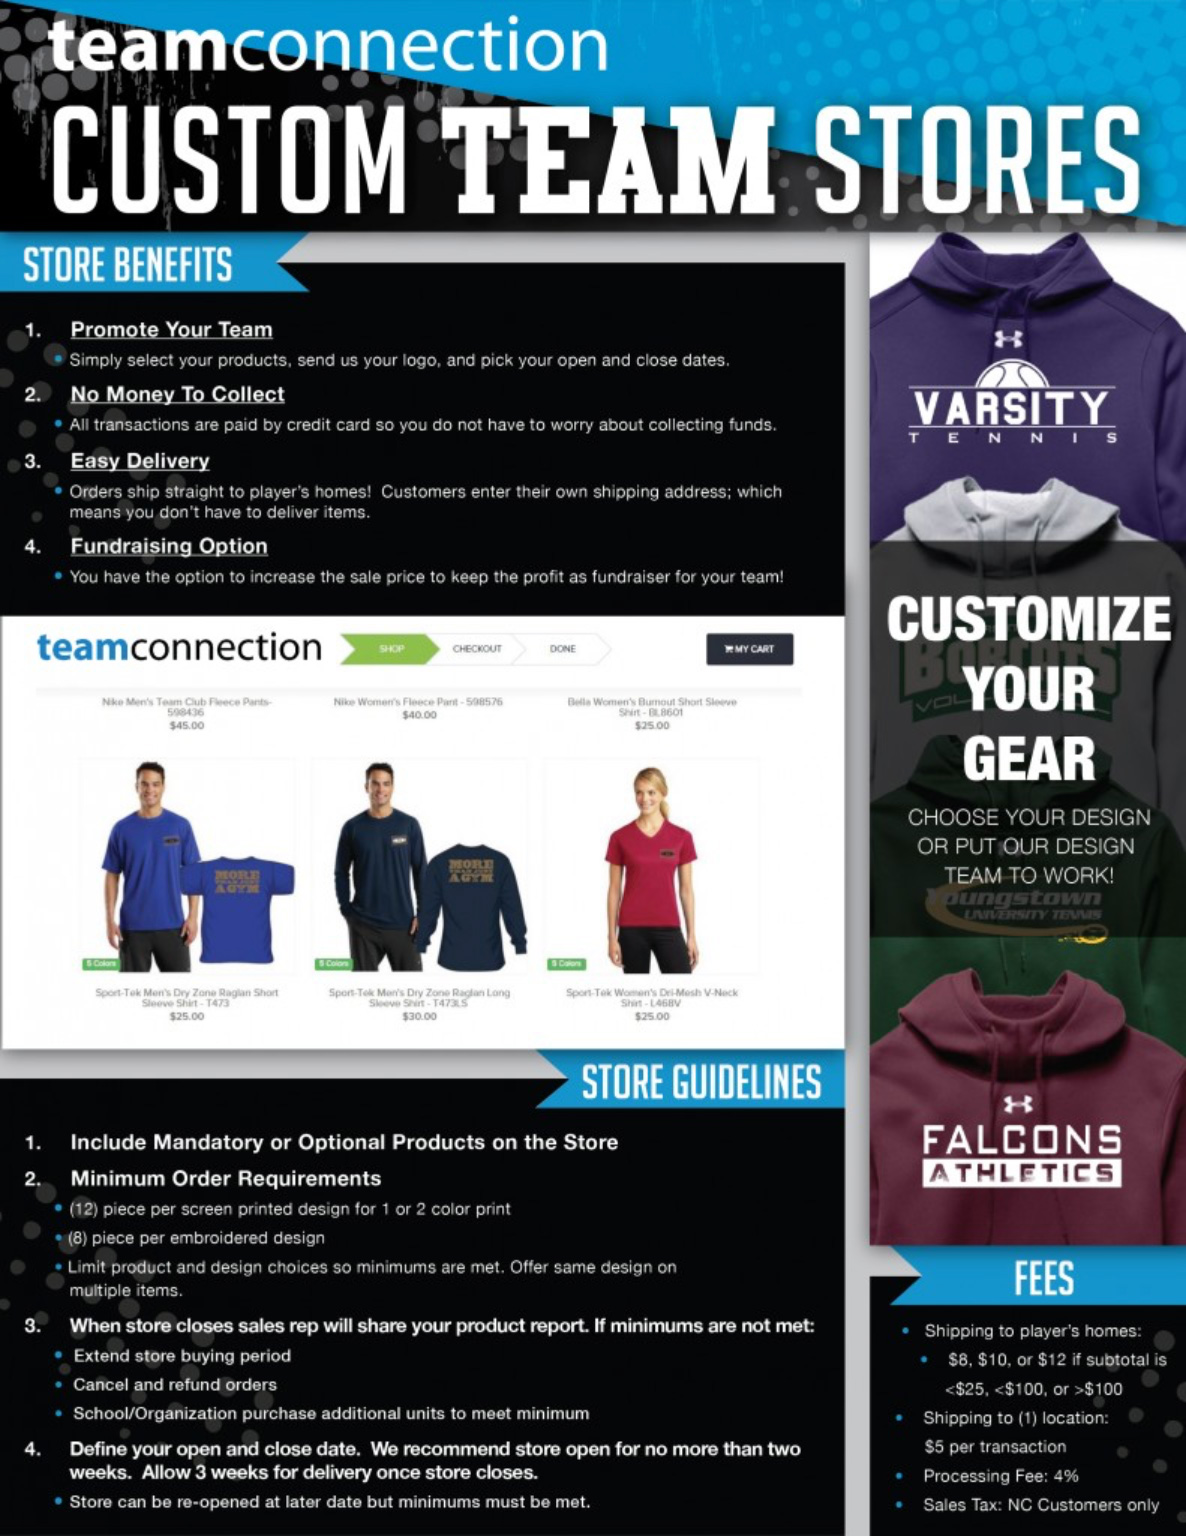 Teamconnection Custom Team Stores